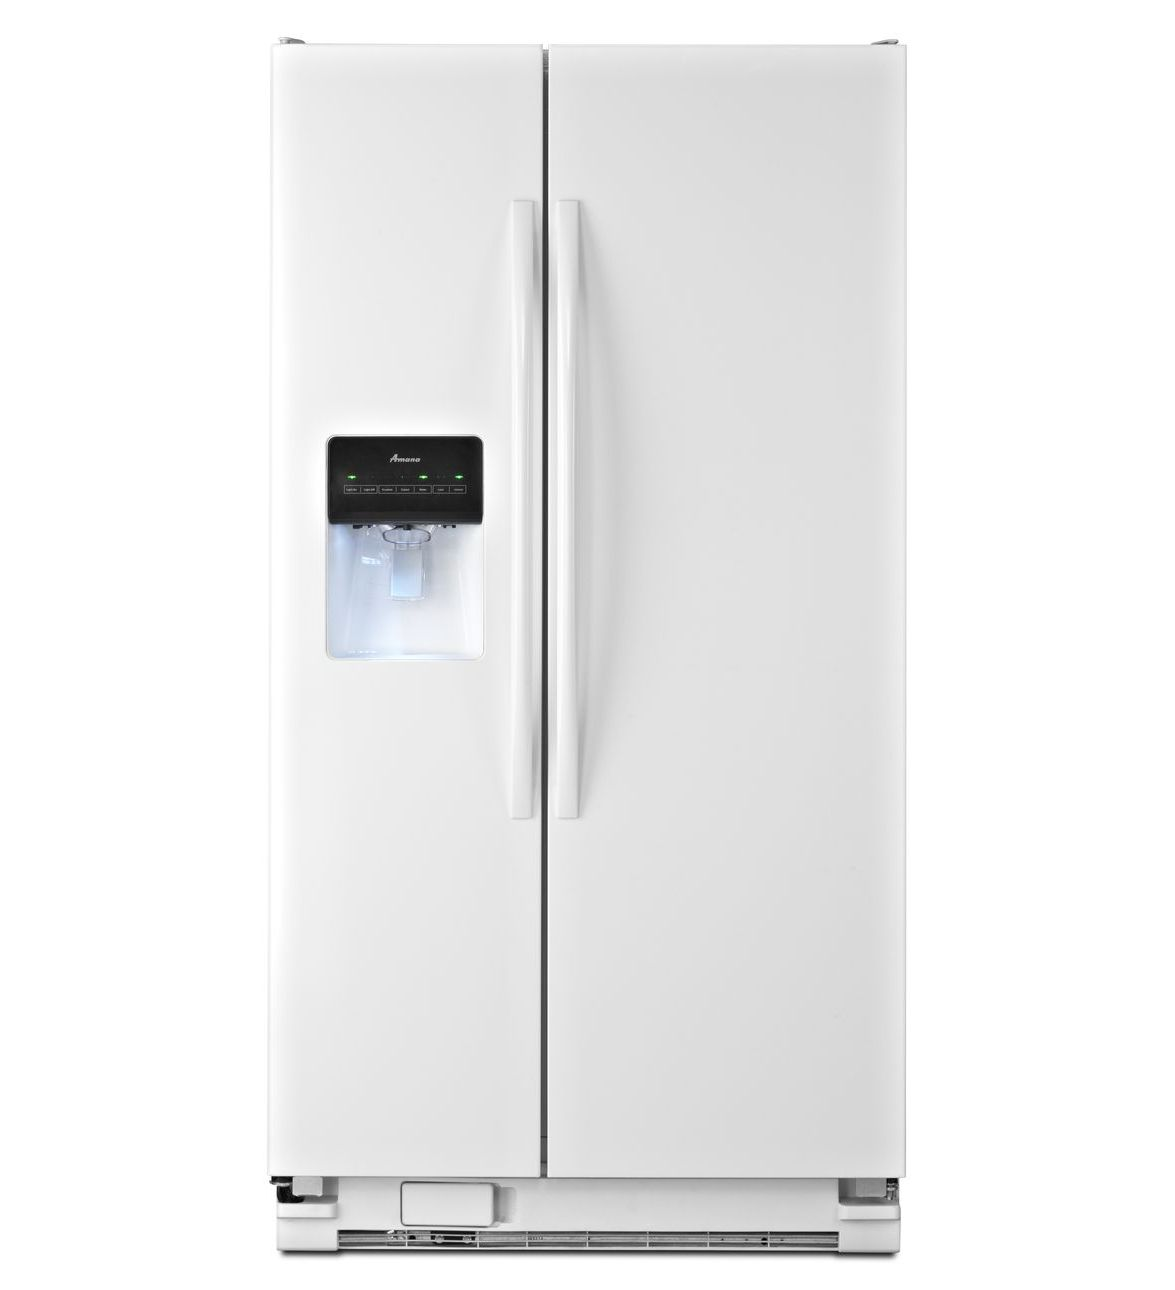 Maytag french door refrigerator reviews - The Maytag Amana Fridge Review